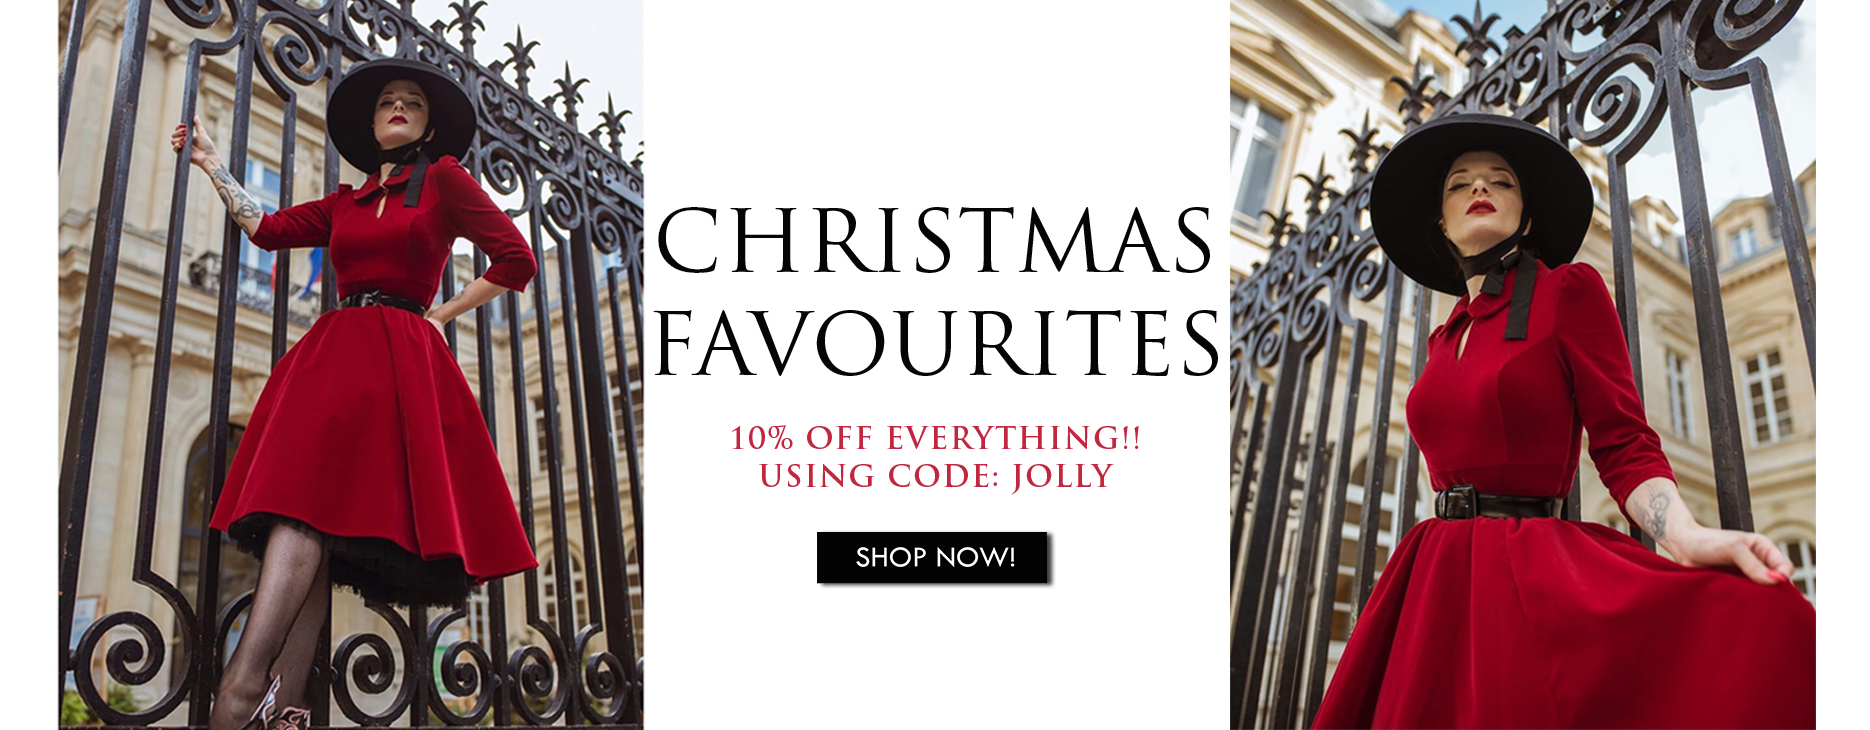 Christmas Favourites with 10% discount code